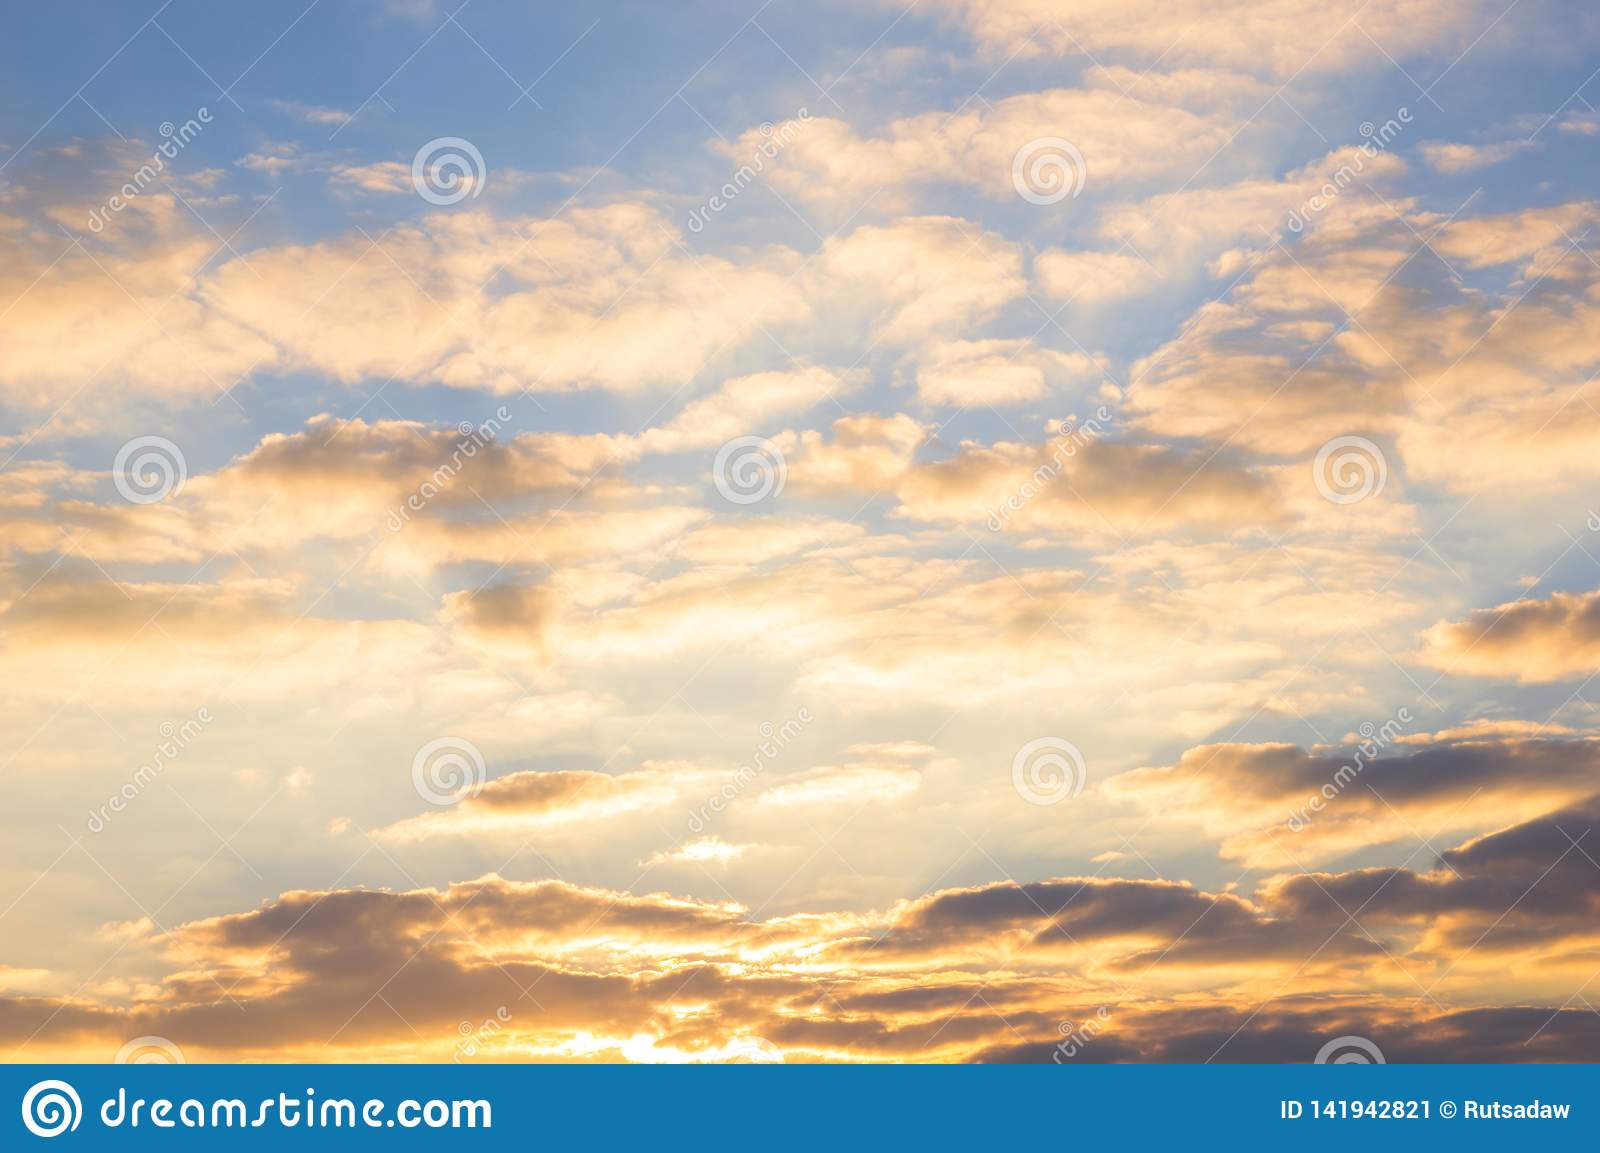 Blue sky and golden clouds at beautiful sunrise